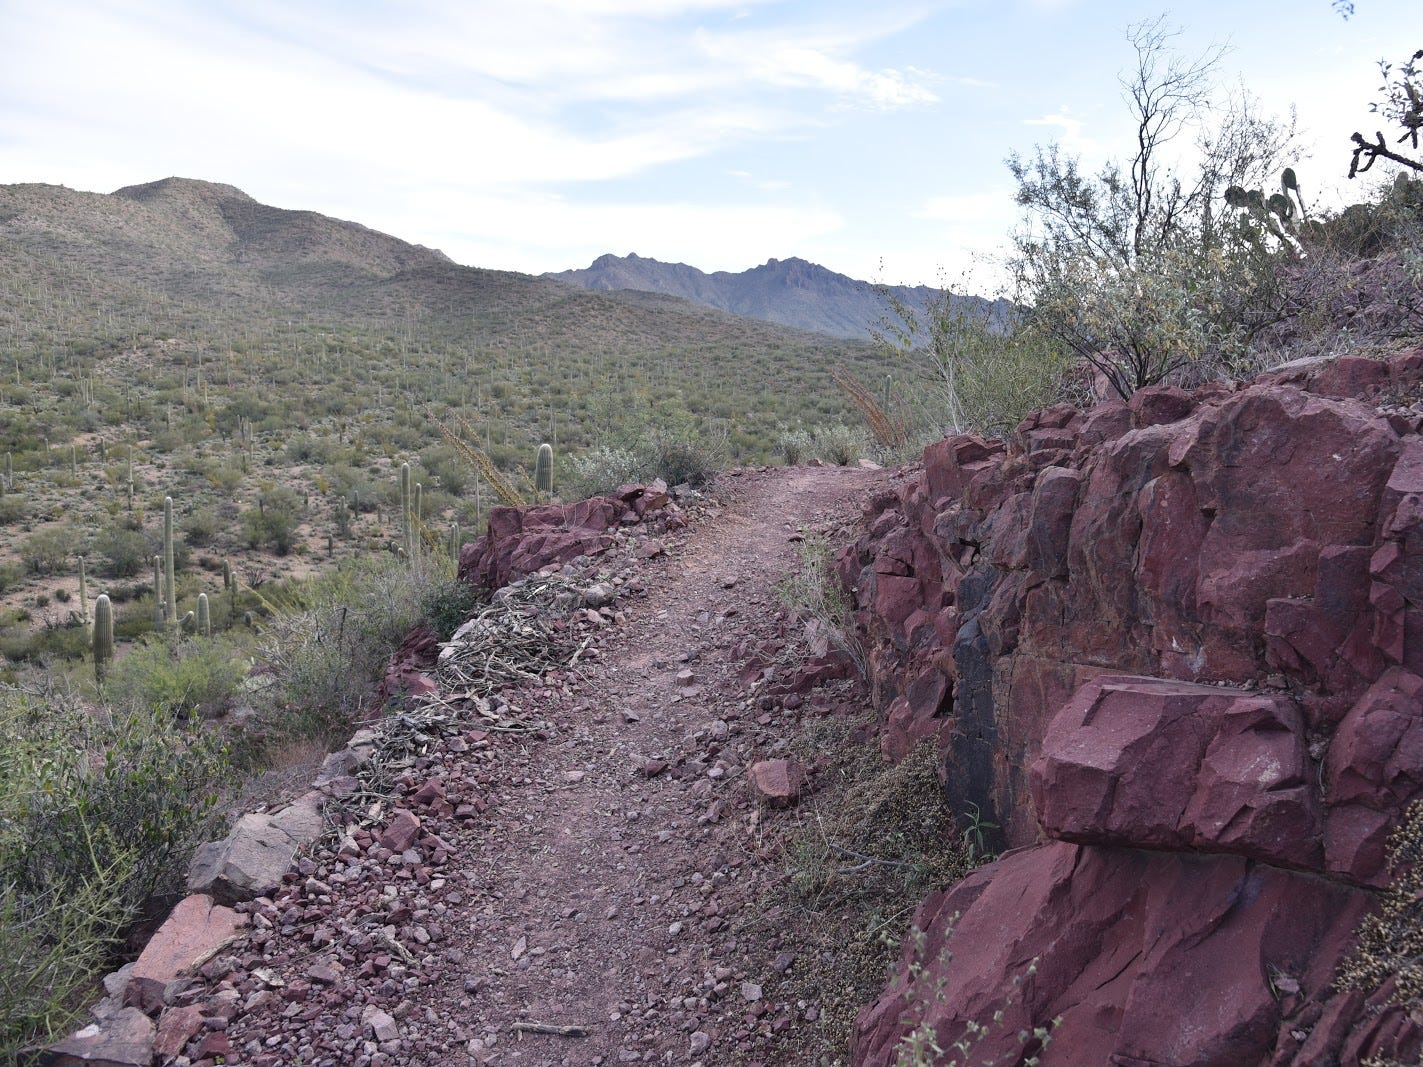 Colorful rock outcroppings line the route.